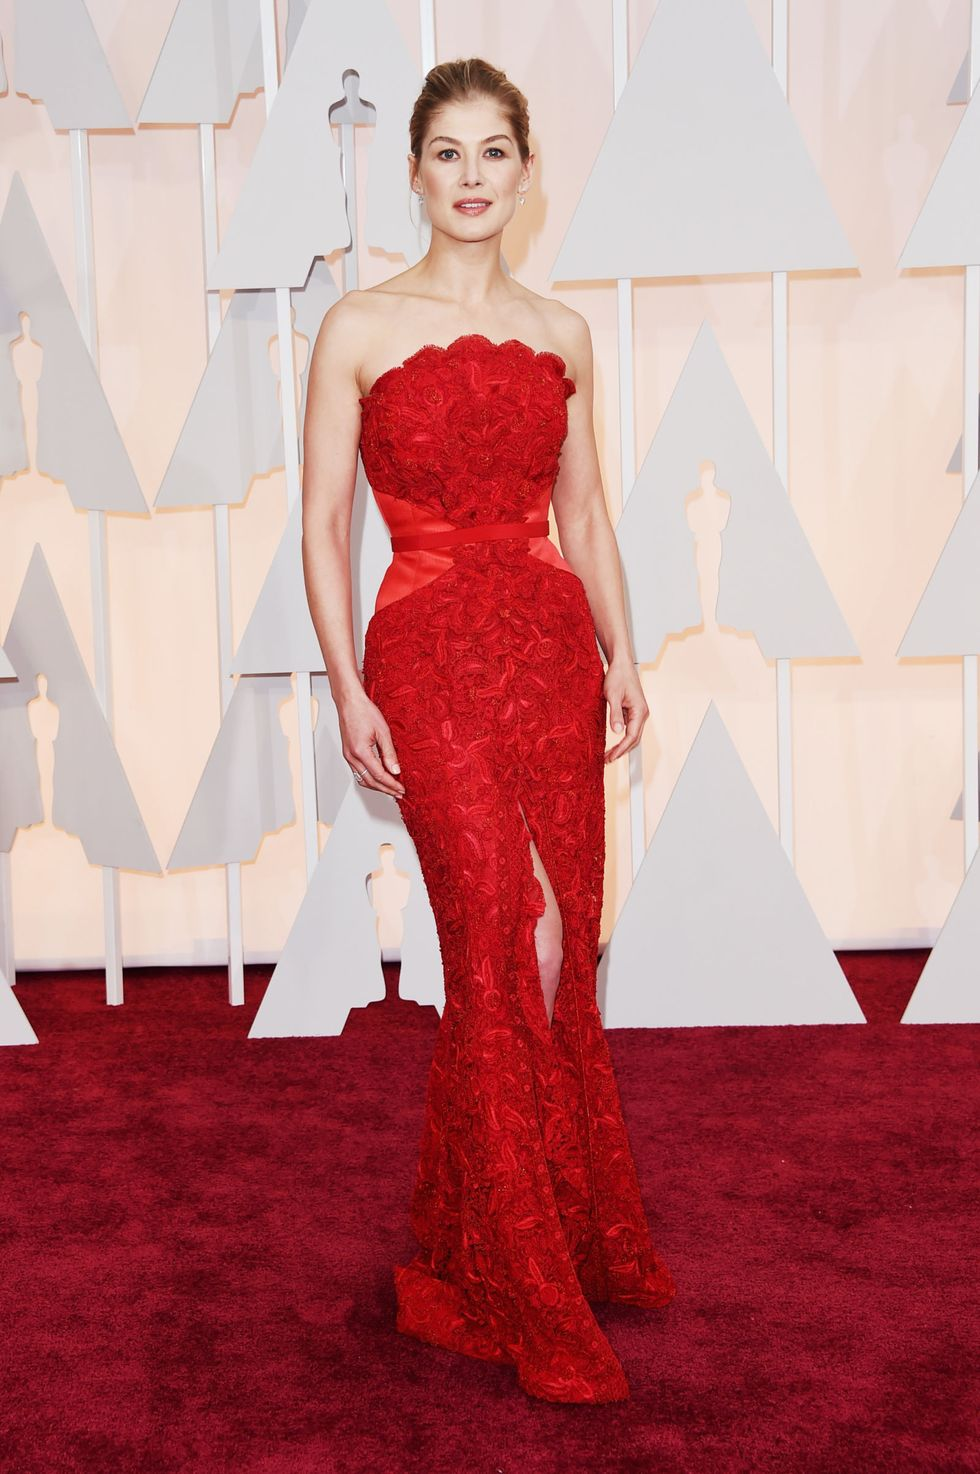 Rosamund Pike, 2015 Pike looks like a statuette herself in scarlet Givenchy Haute Couture, perhaps playing off her unforgettable bloody role in the previous year's Gone Girl .